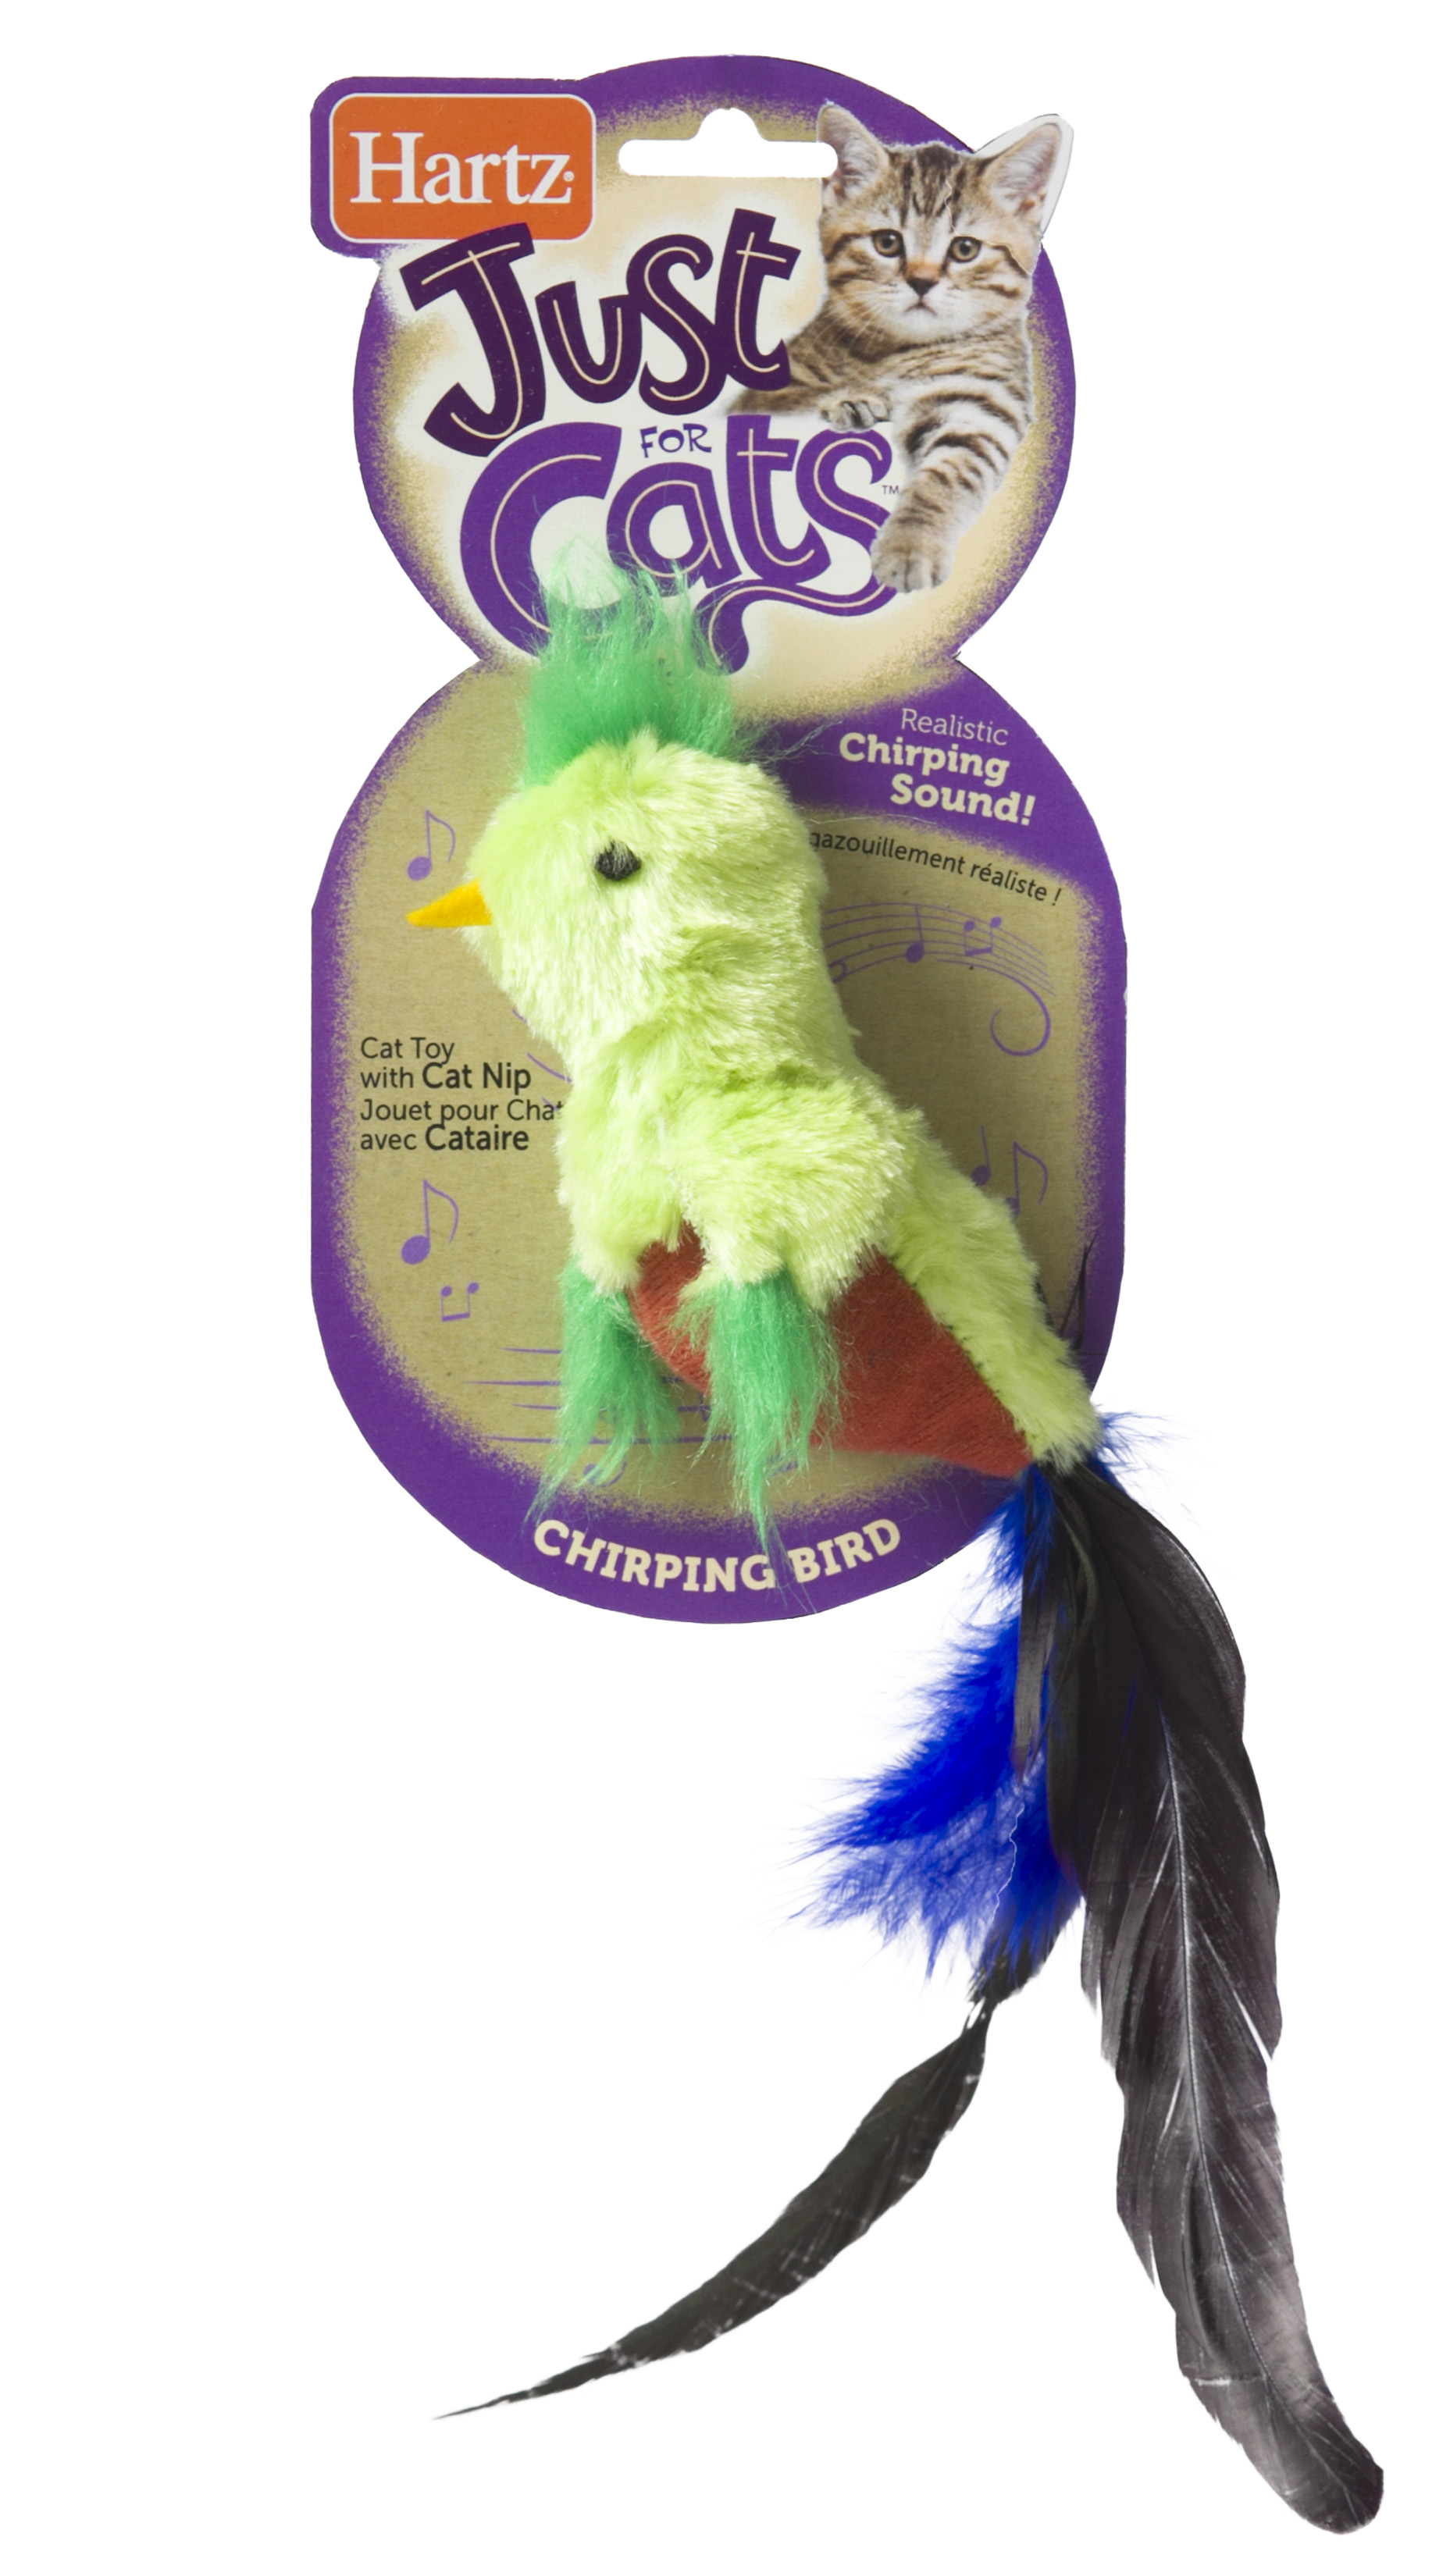 Hartz Just For Cats Chirping Birds Sound Cat Toy by Hartz